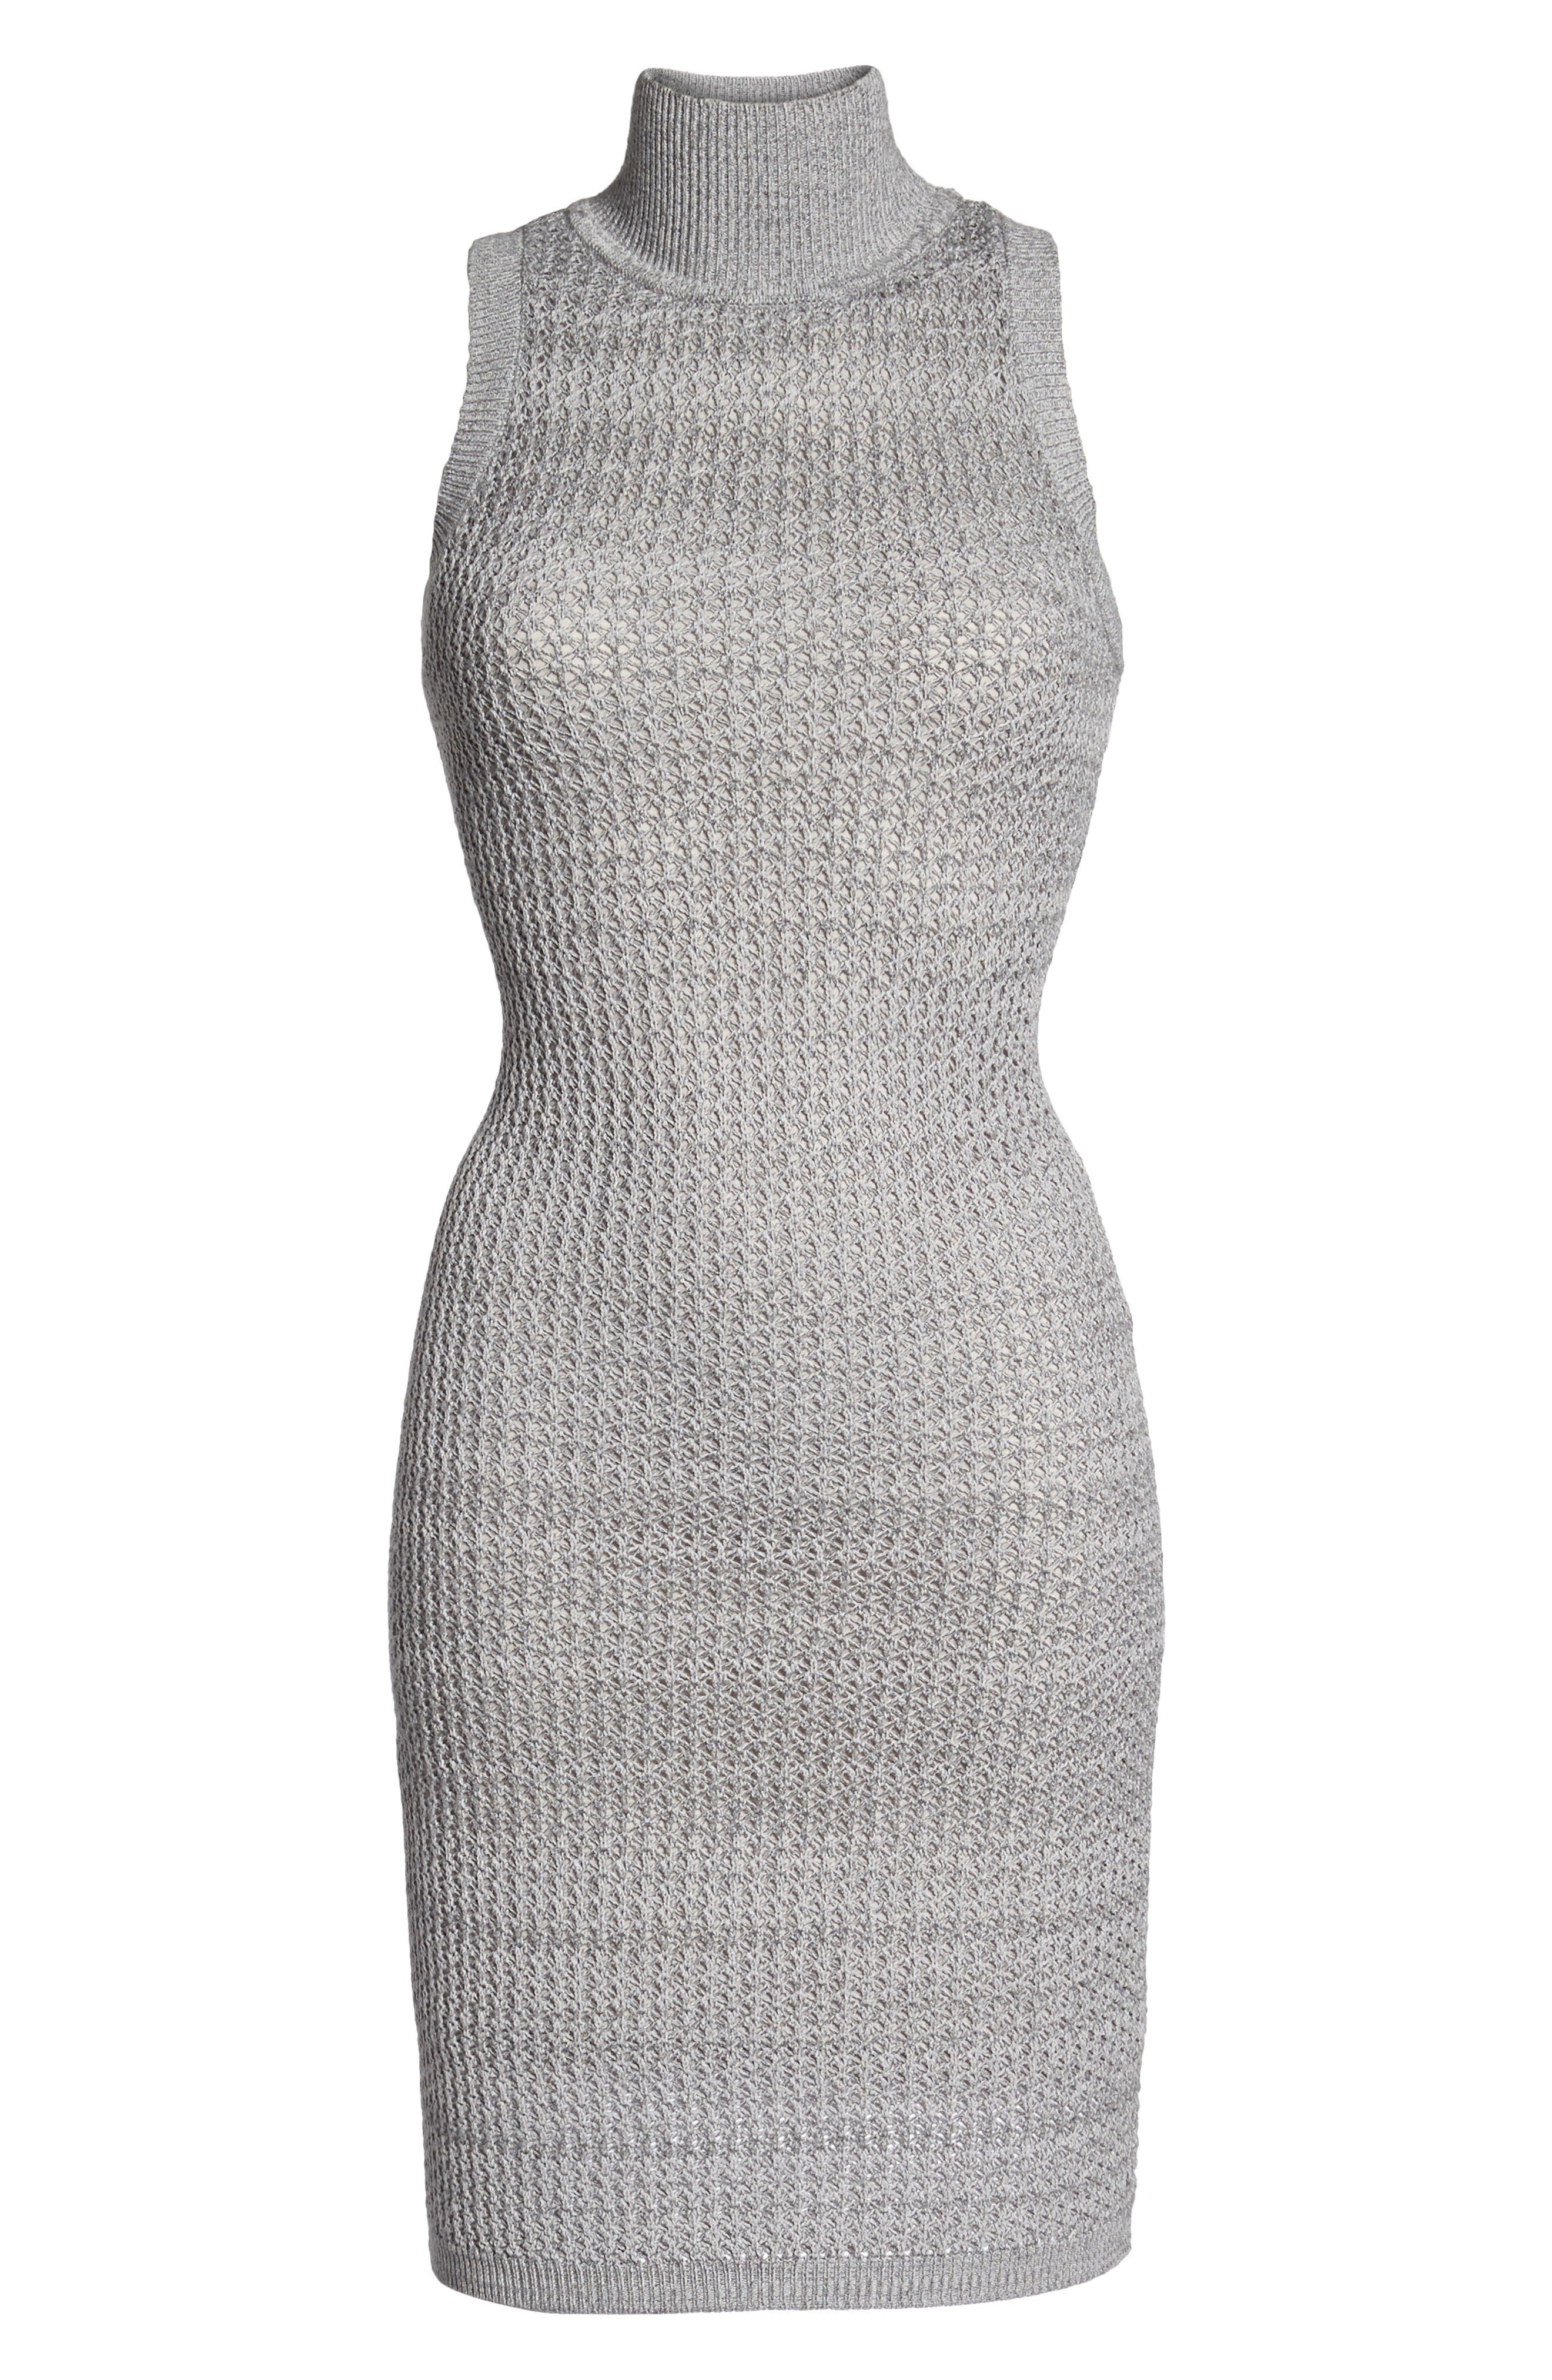 We Shall Overcome Body-Con Dress,                             Alternate thumbnail 7, color,                             Grey